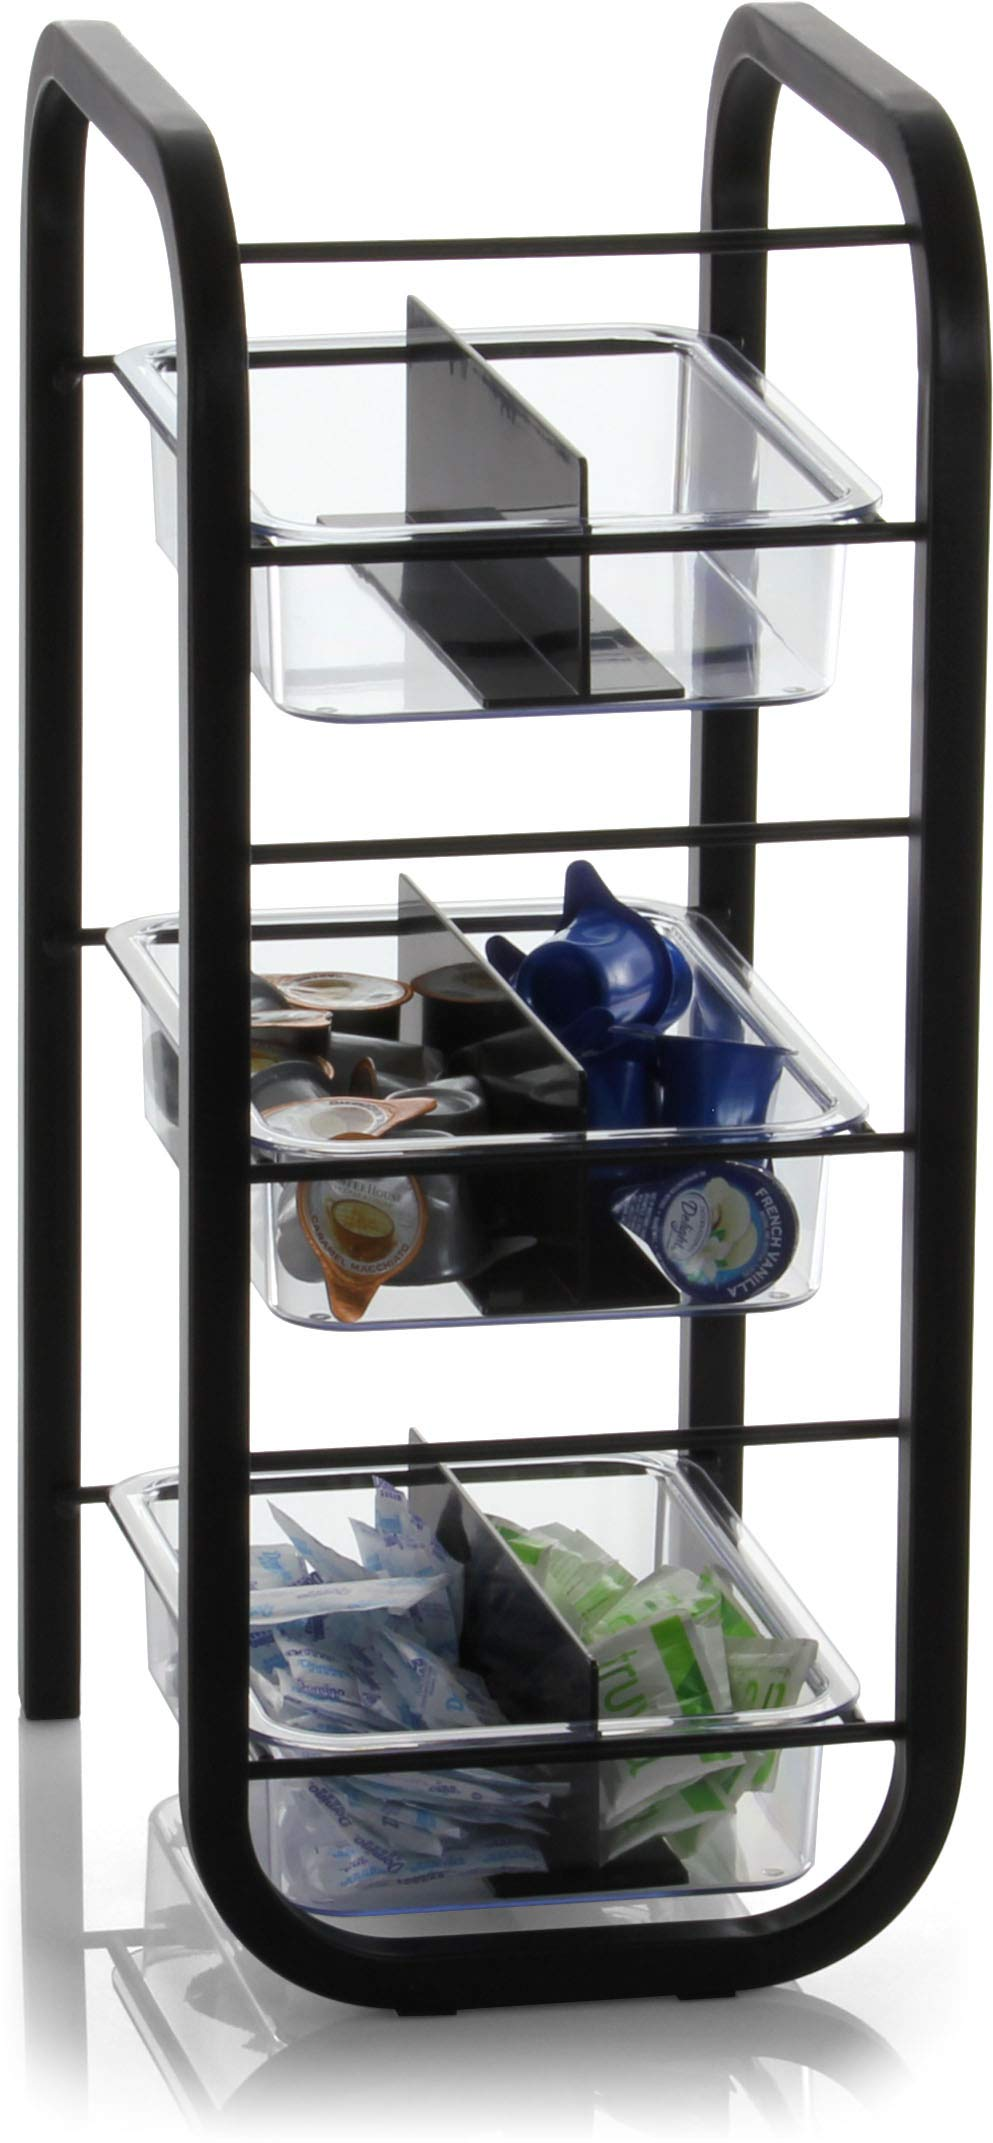 Officemate BreakCentral Breakroom 3 Tier Condiment and Coffee Pod Organizer, Black (28007)